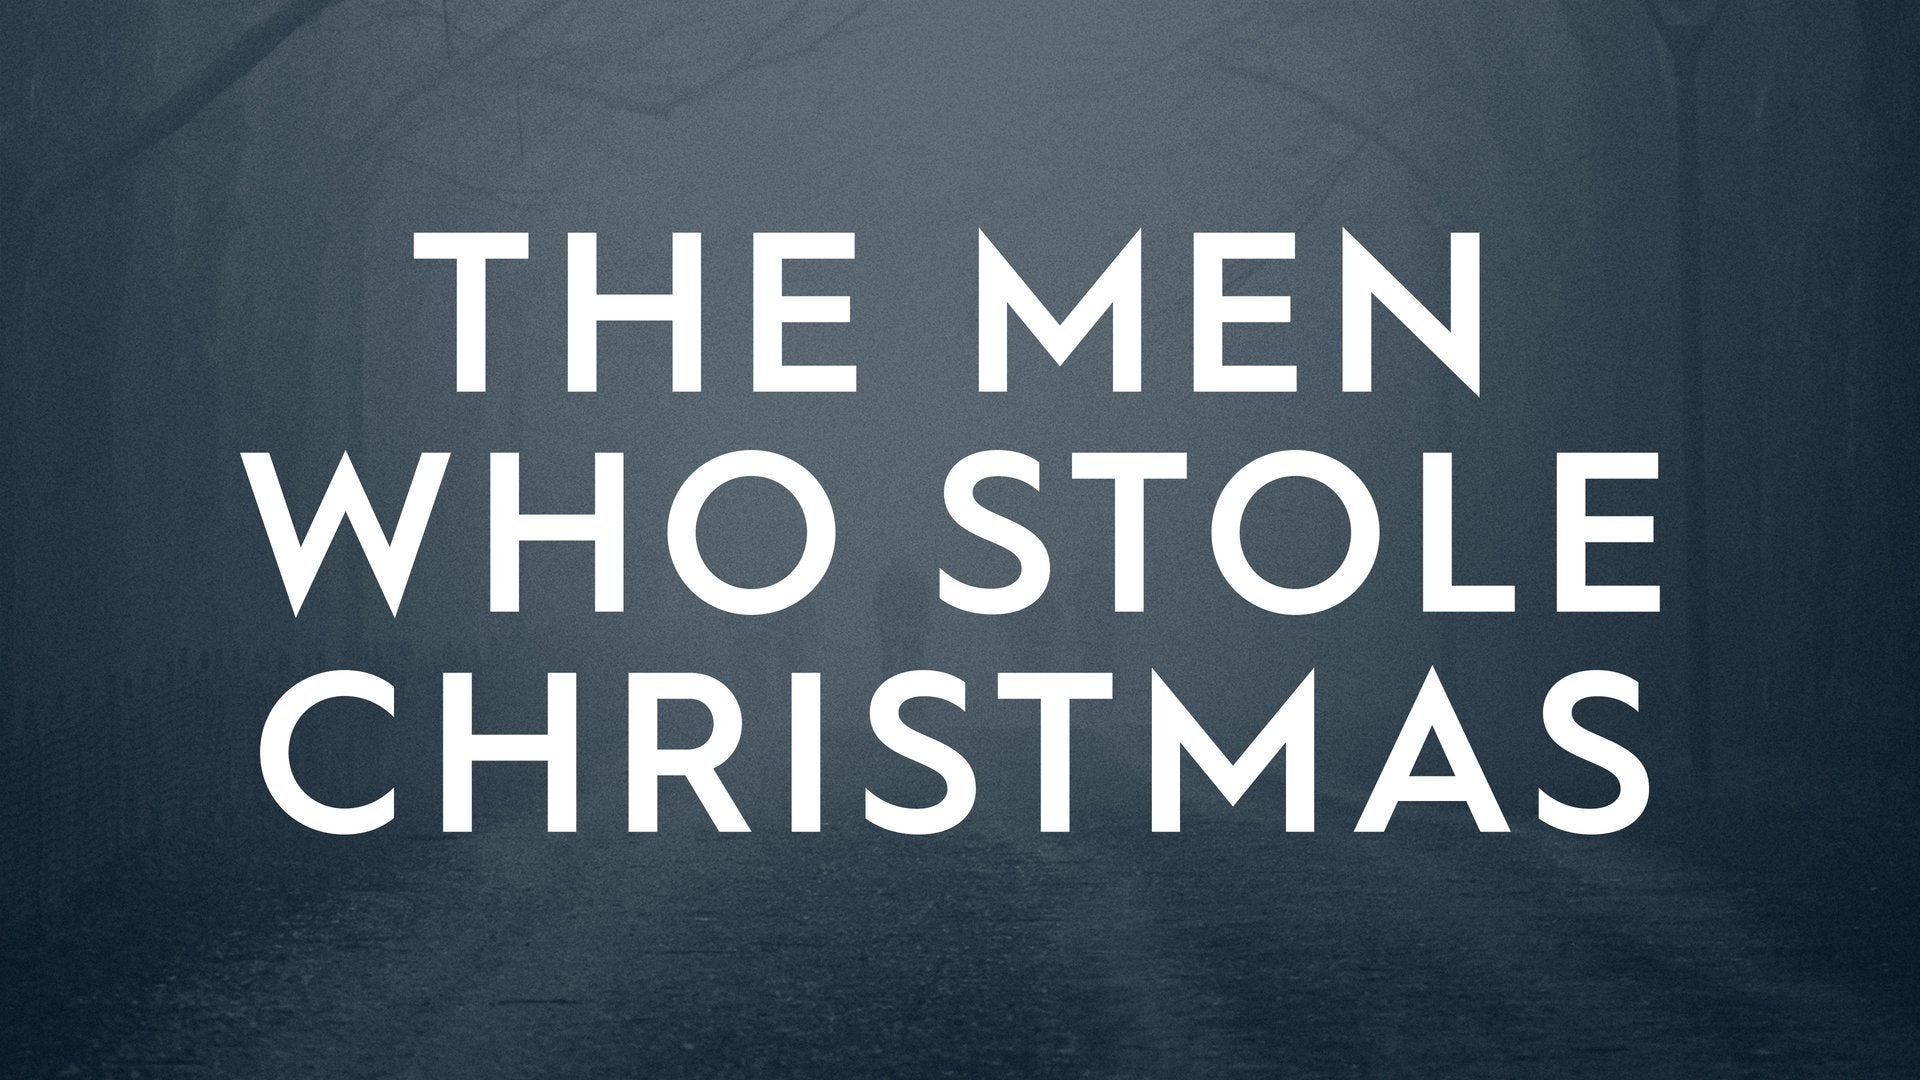 The Men Who Stole Christmas